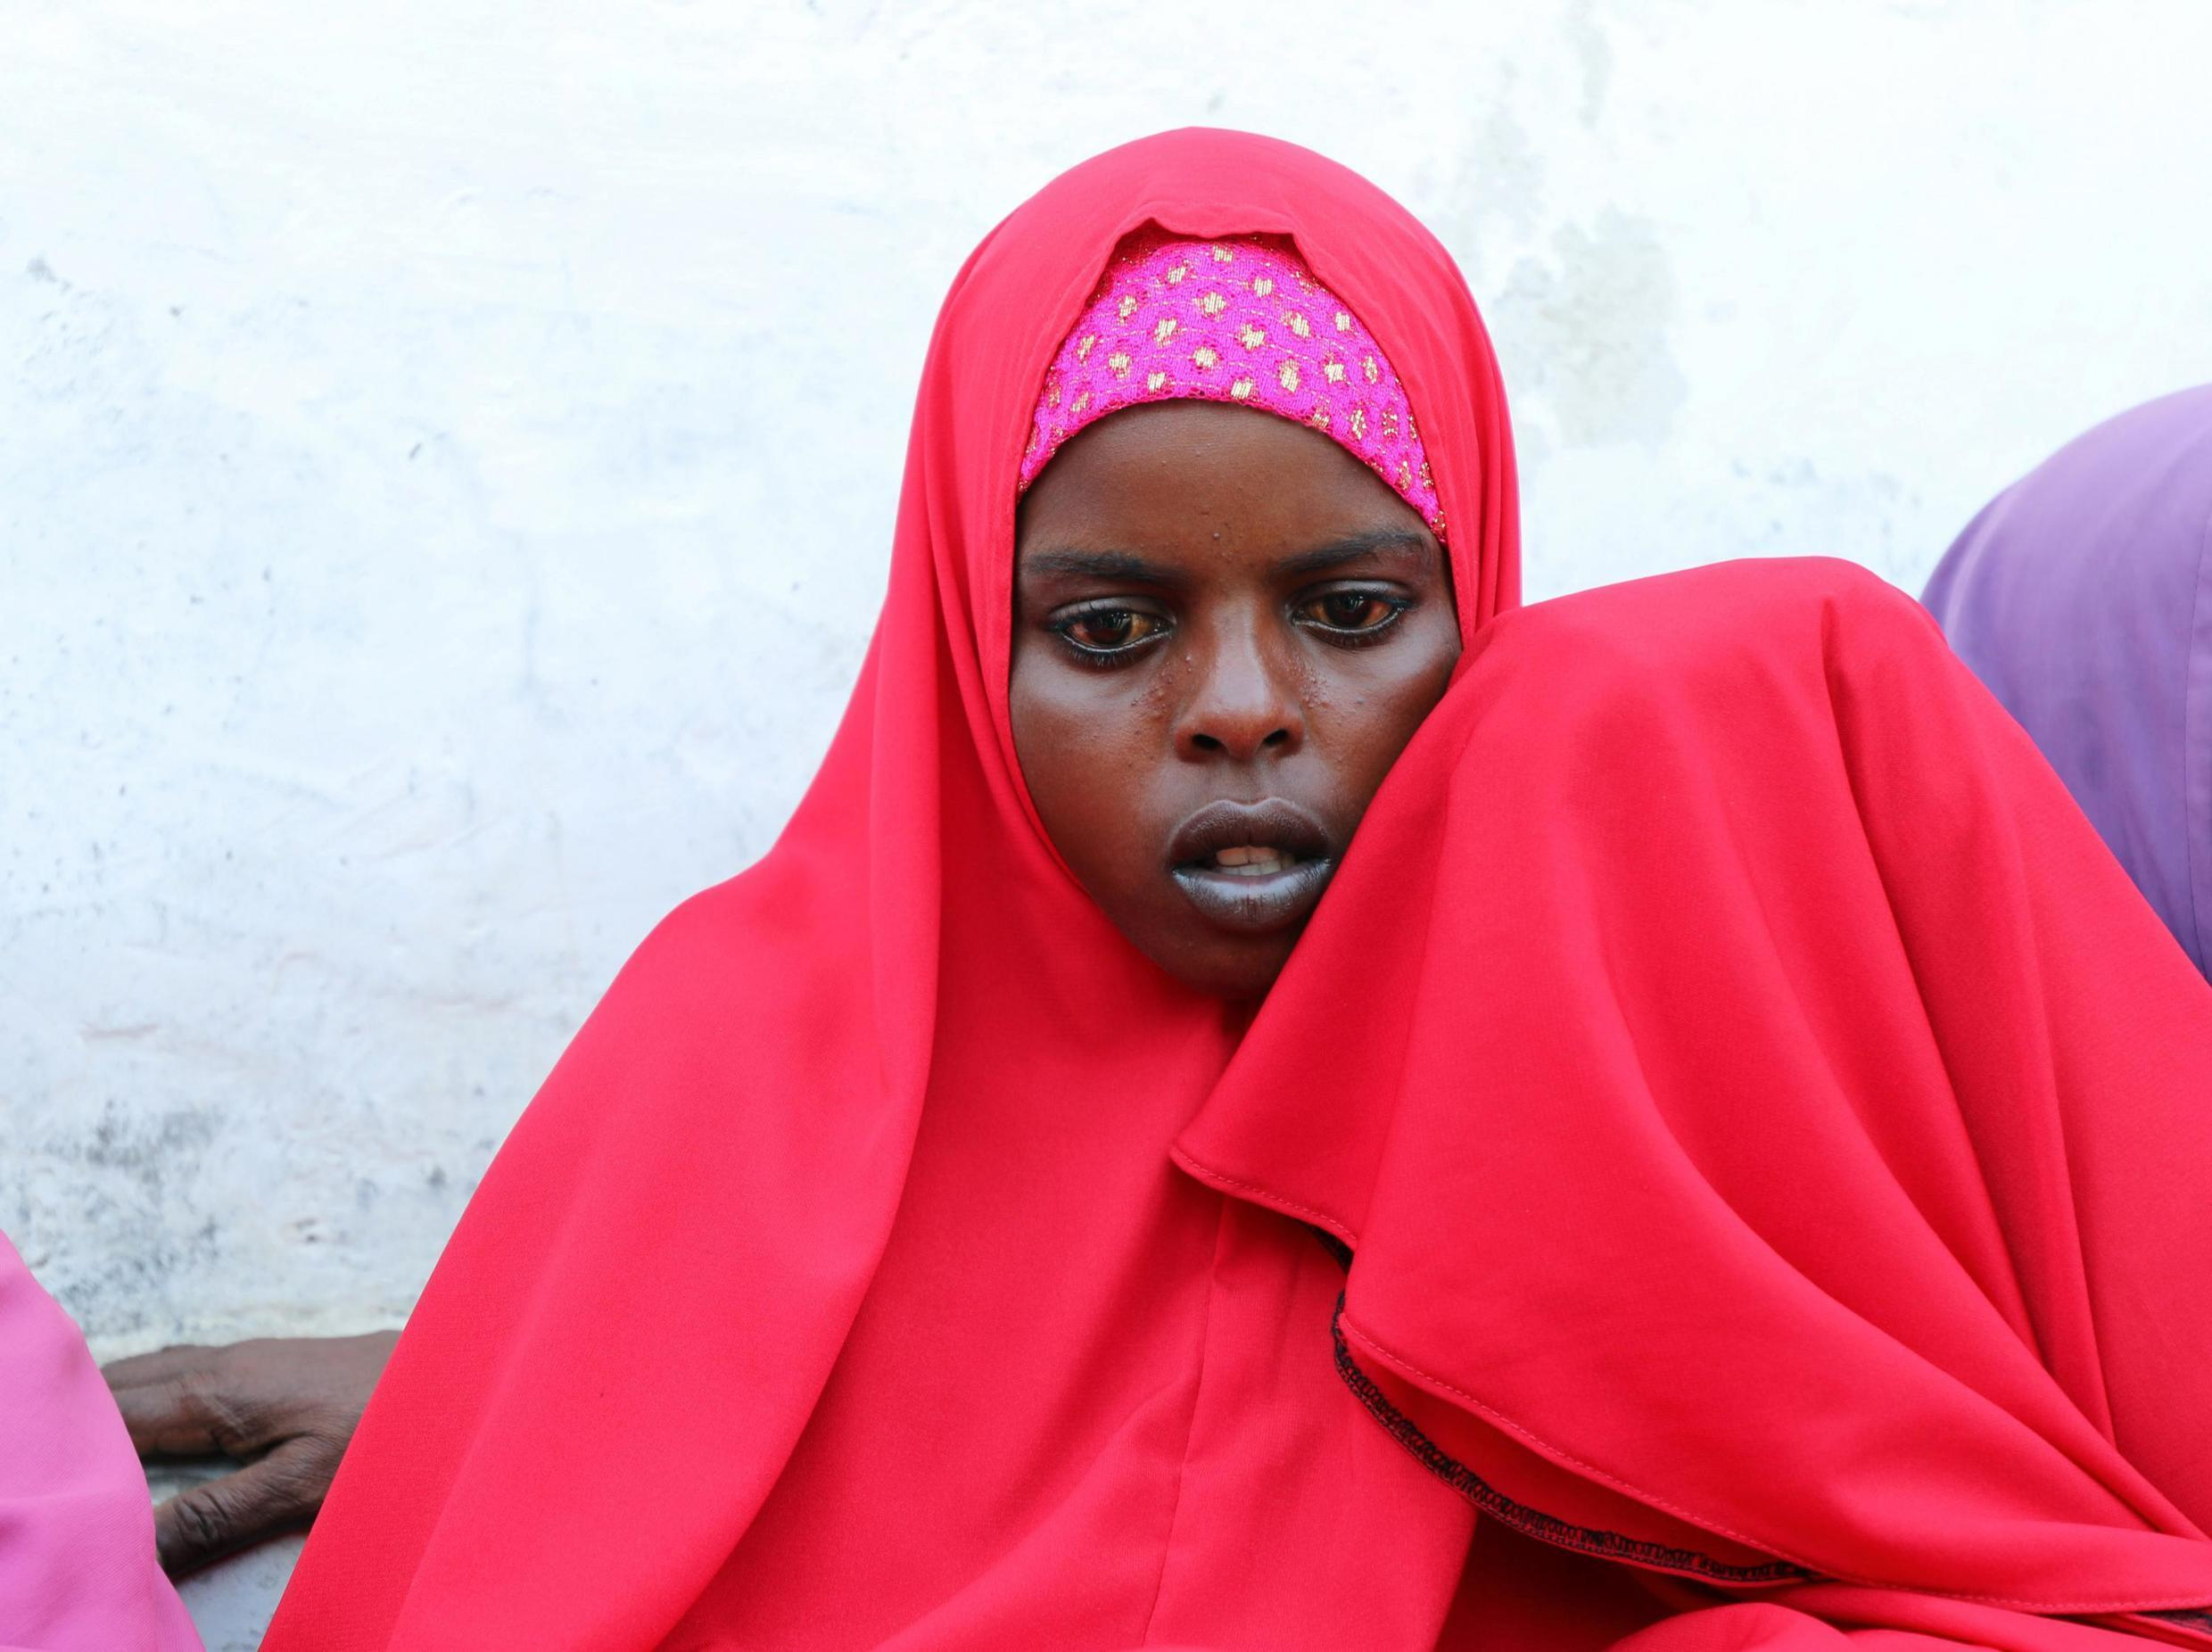 Qali Ibrahim who lost her husband in the car bomb explosion is consoled by an unknown relative during a Reuters interview at the Madina hospital in Mogadishu, Somalia December 28, 2019